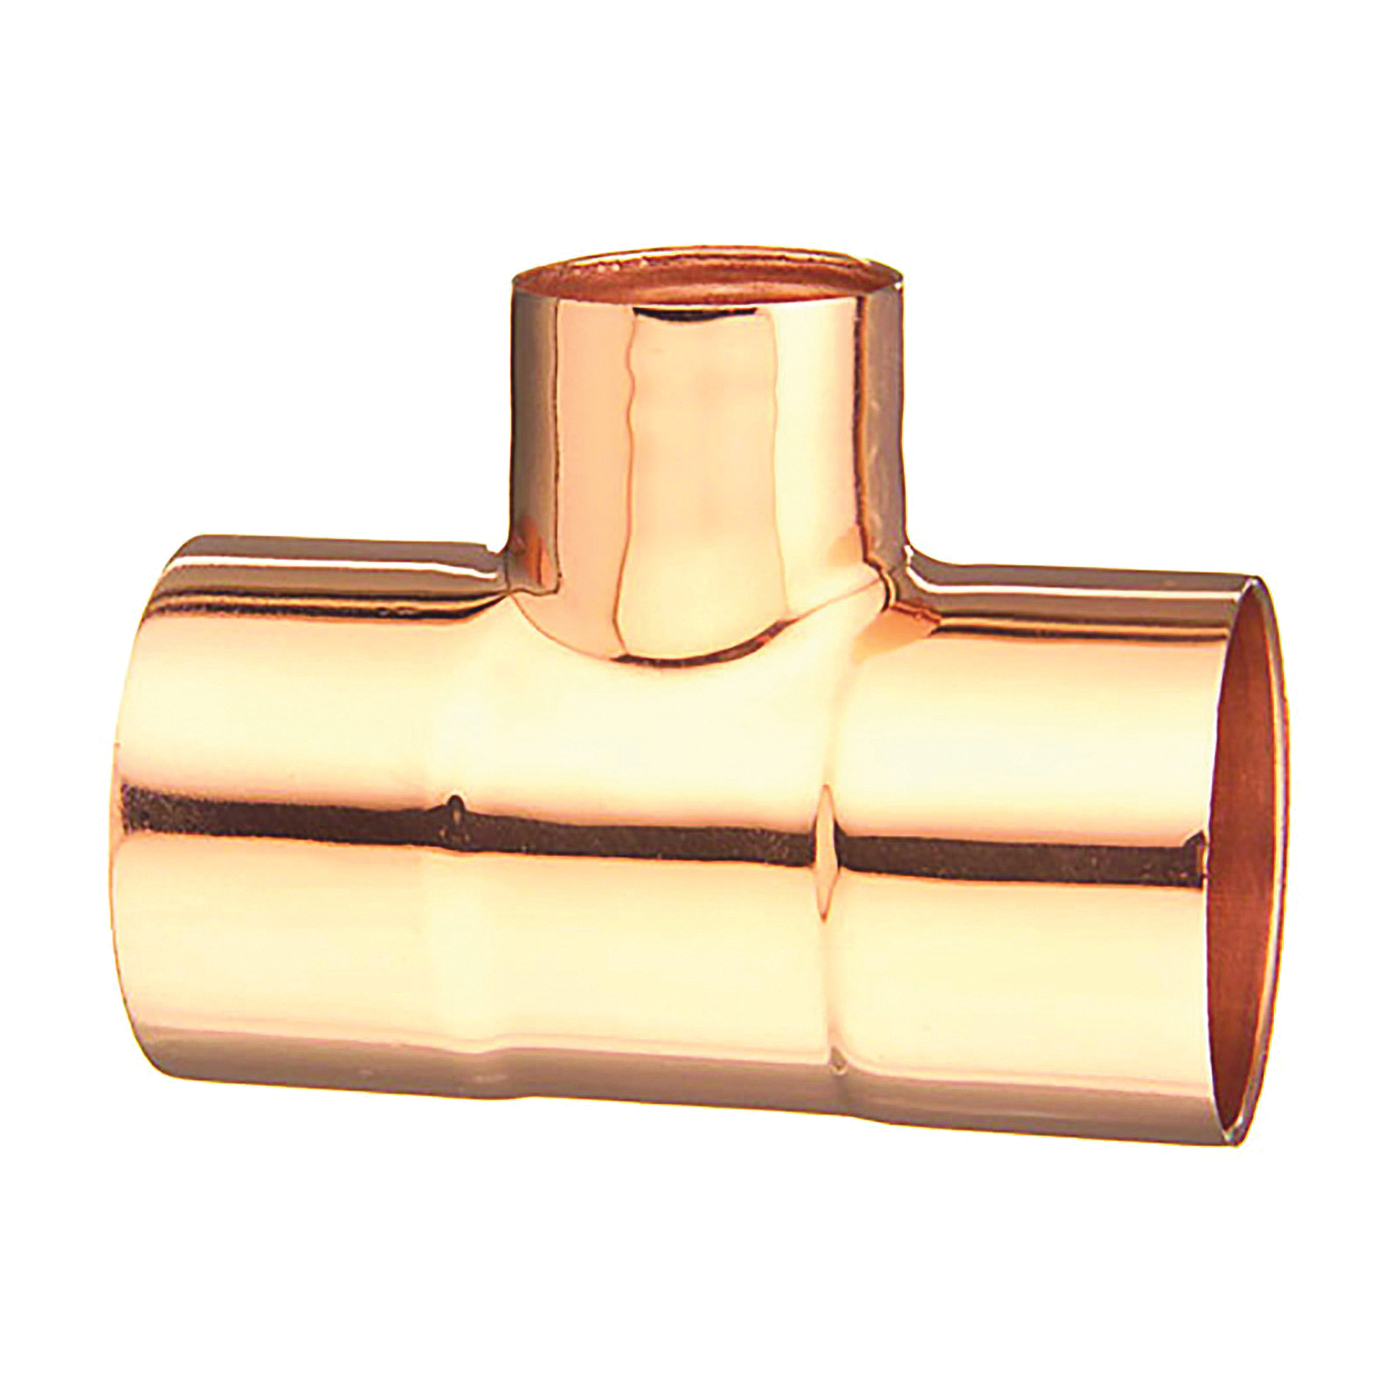 Picture of EPC 111R Series 32828 Pipe Reducing Tee, 1 x 1 x 1/2 in, Sweat, Copper